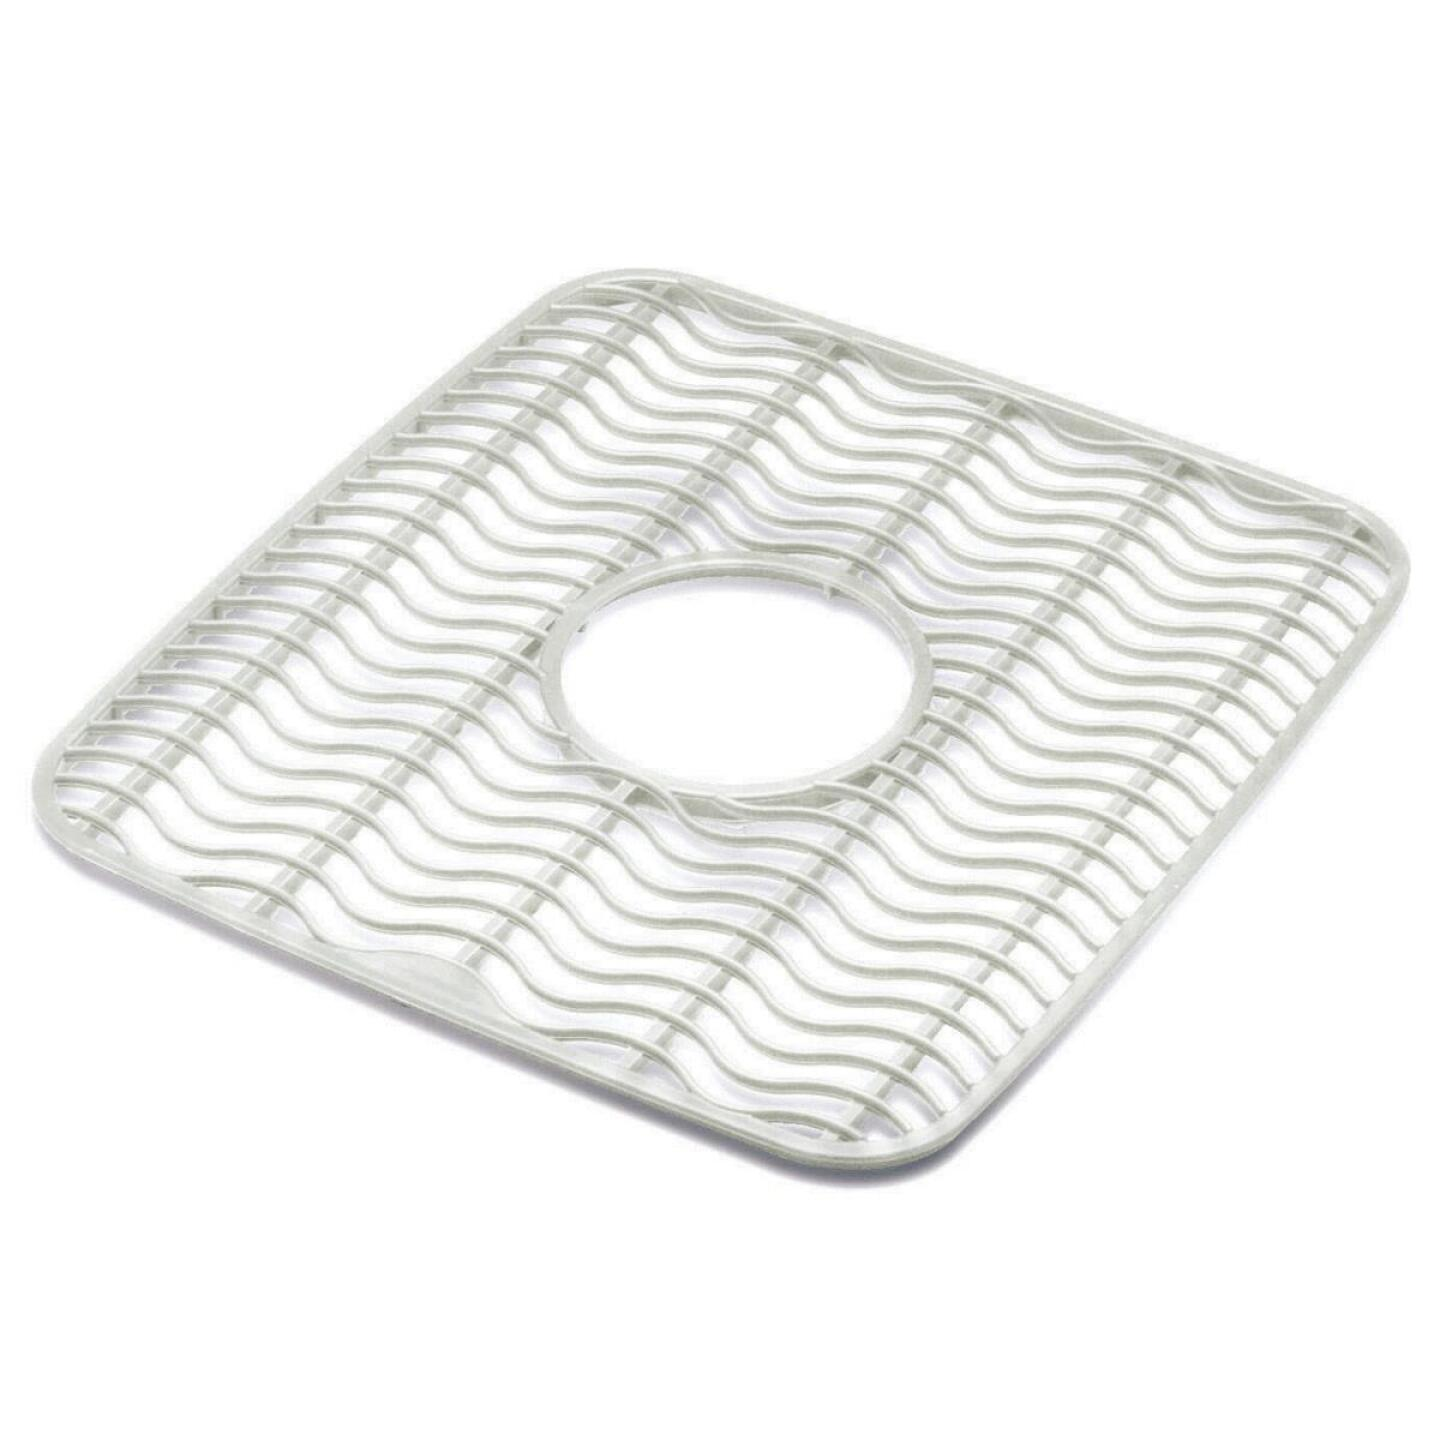 Rubbermaid 11.5 In. x 12.5 In. Clear Twin Sink Mat Protector Image 1